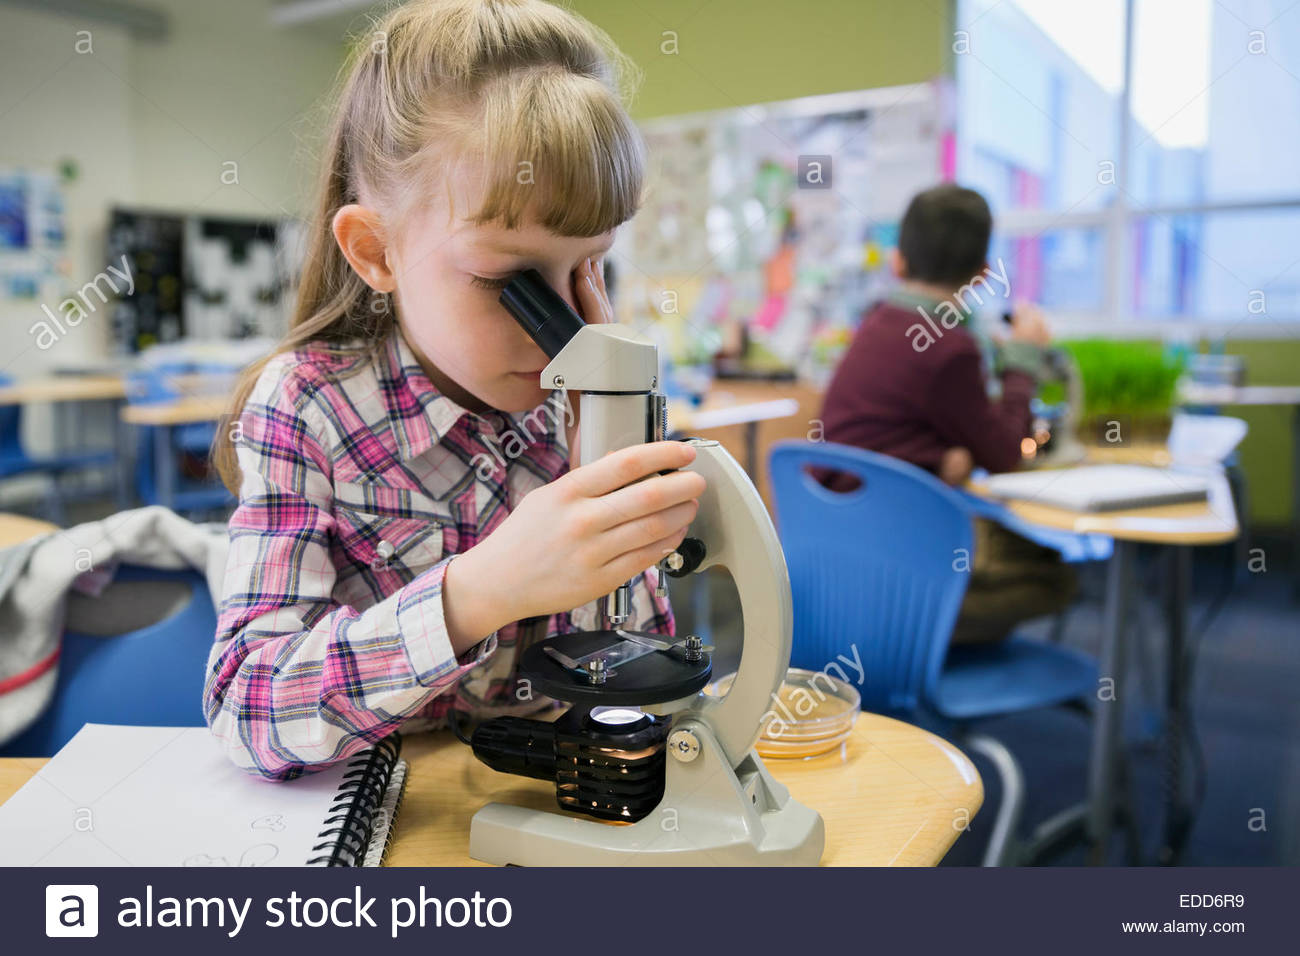 Elementary Student using microscope in laboratory Photo Stock